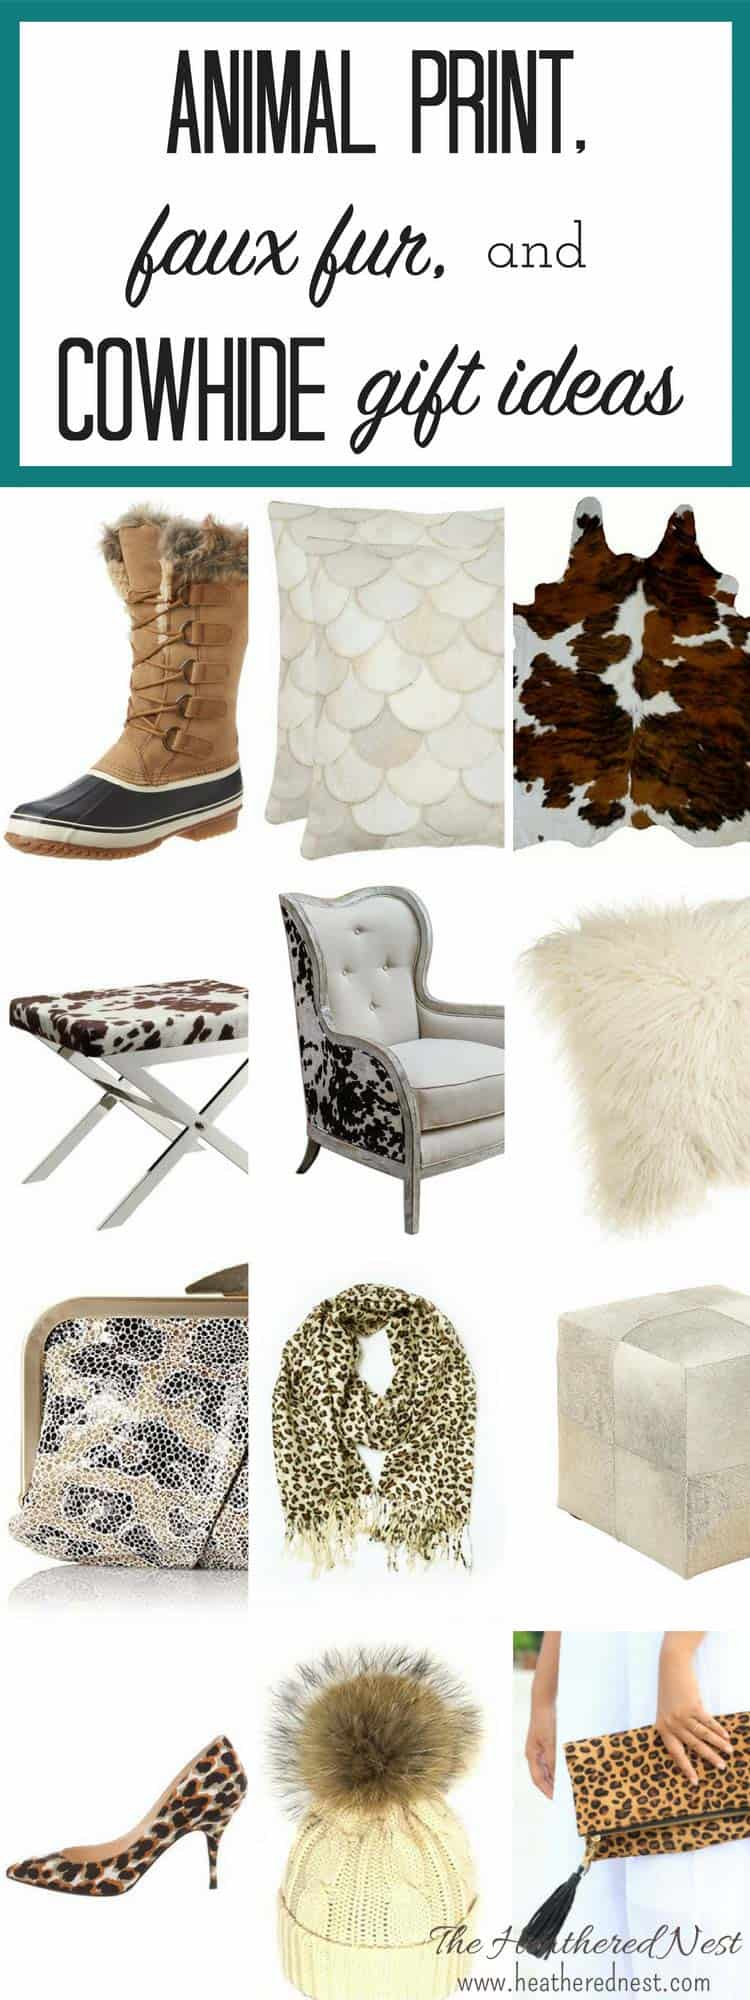 SO MANY gorgeous ideas here!!! LOVE the faux fur. The animal print handbags!!! That cowhide rug!!! GREAT holiday gift ideas...for ME!